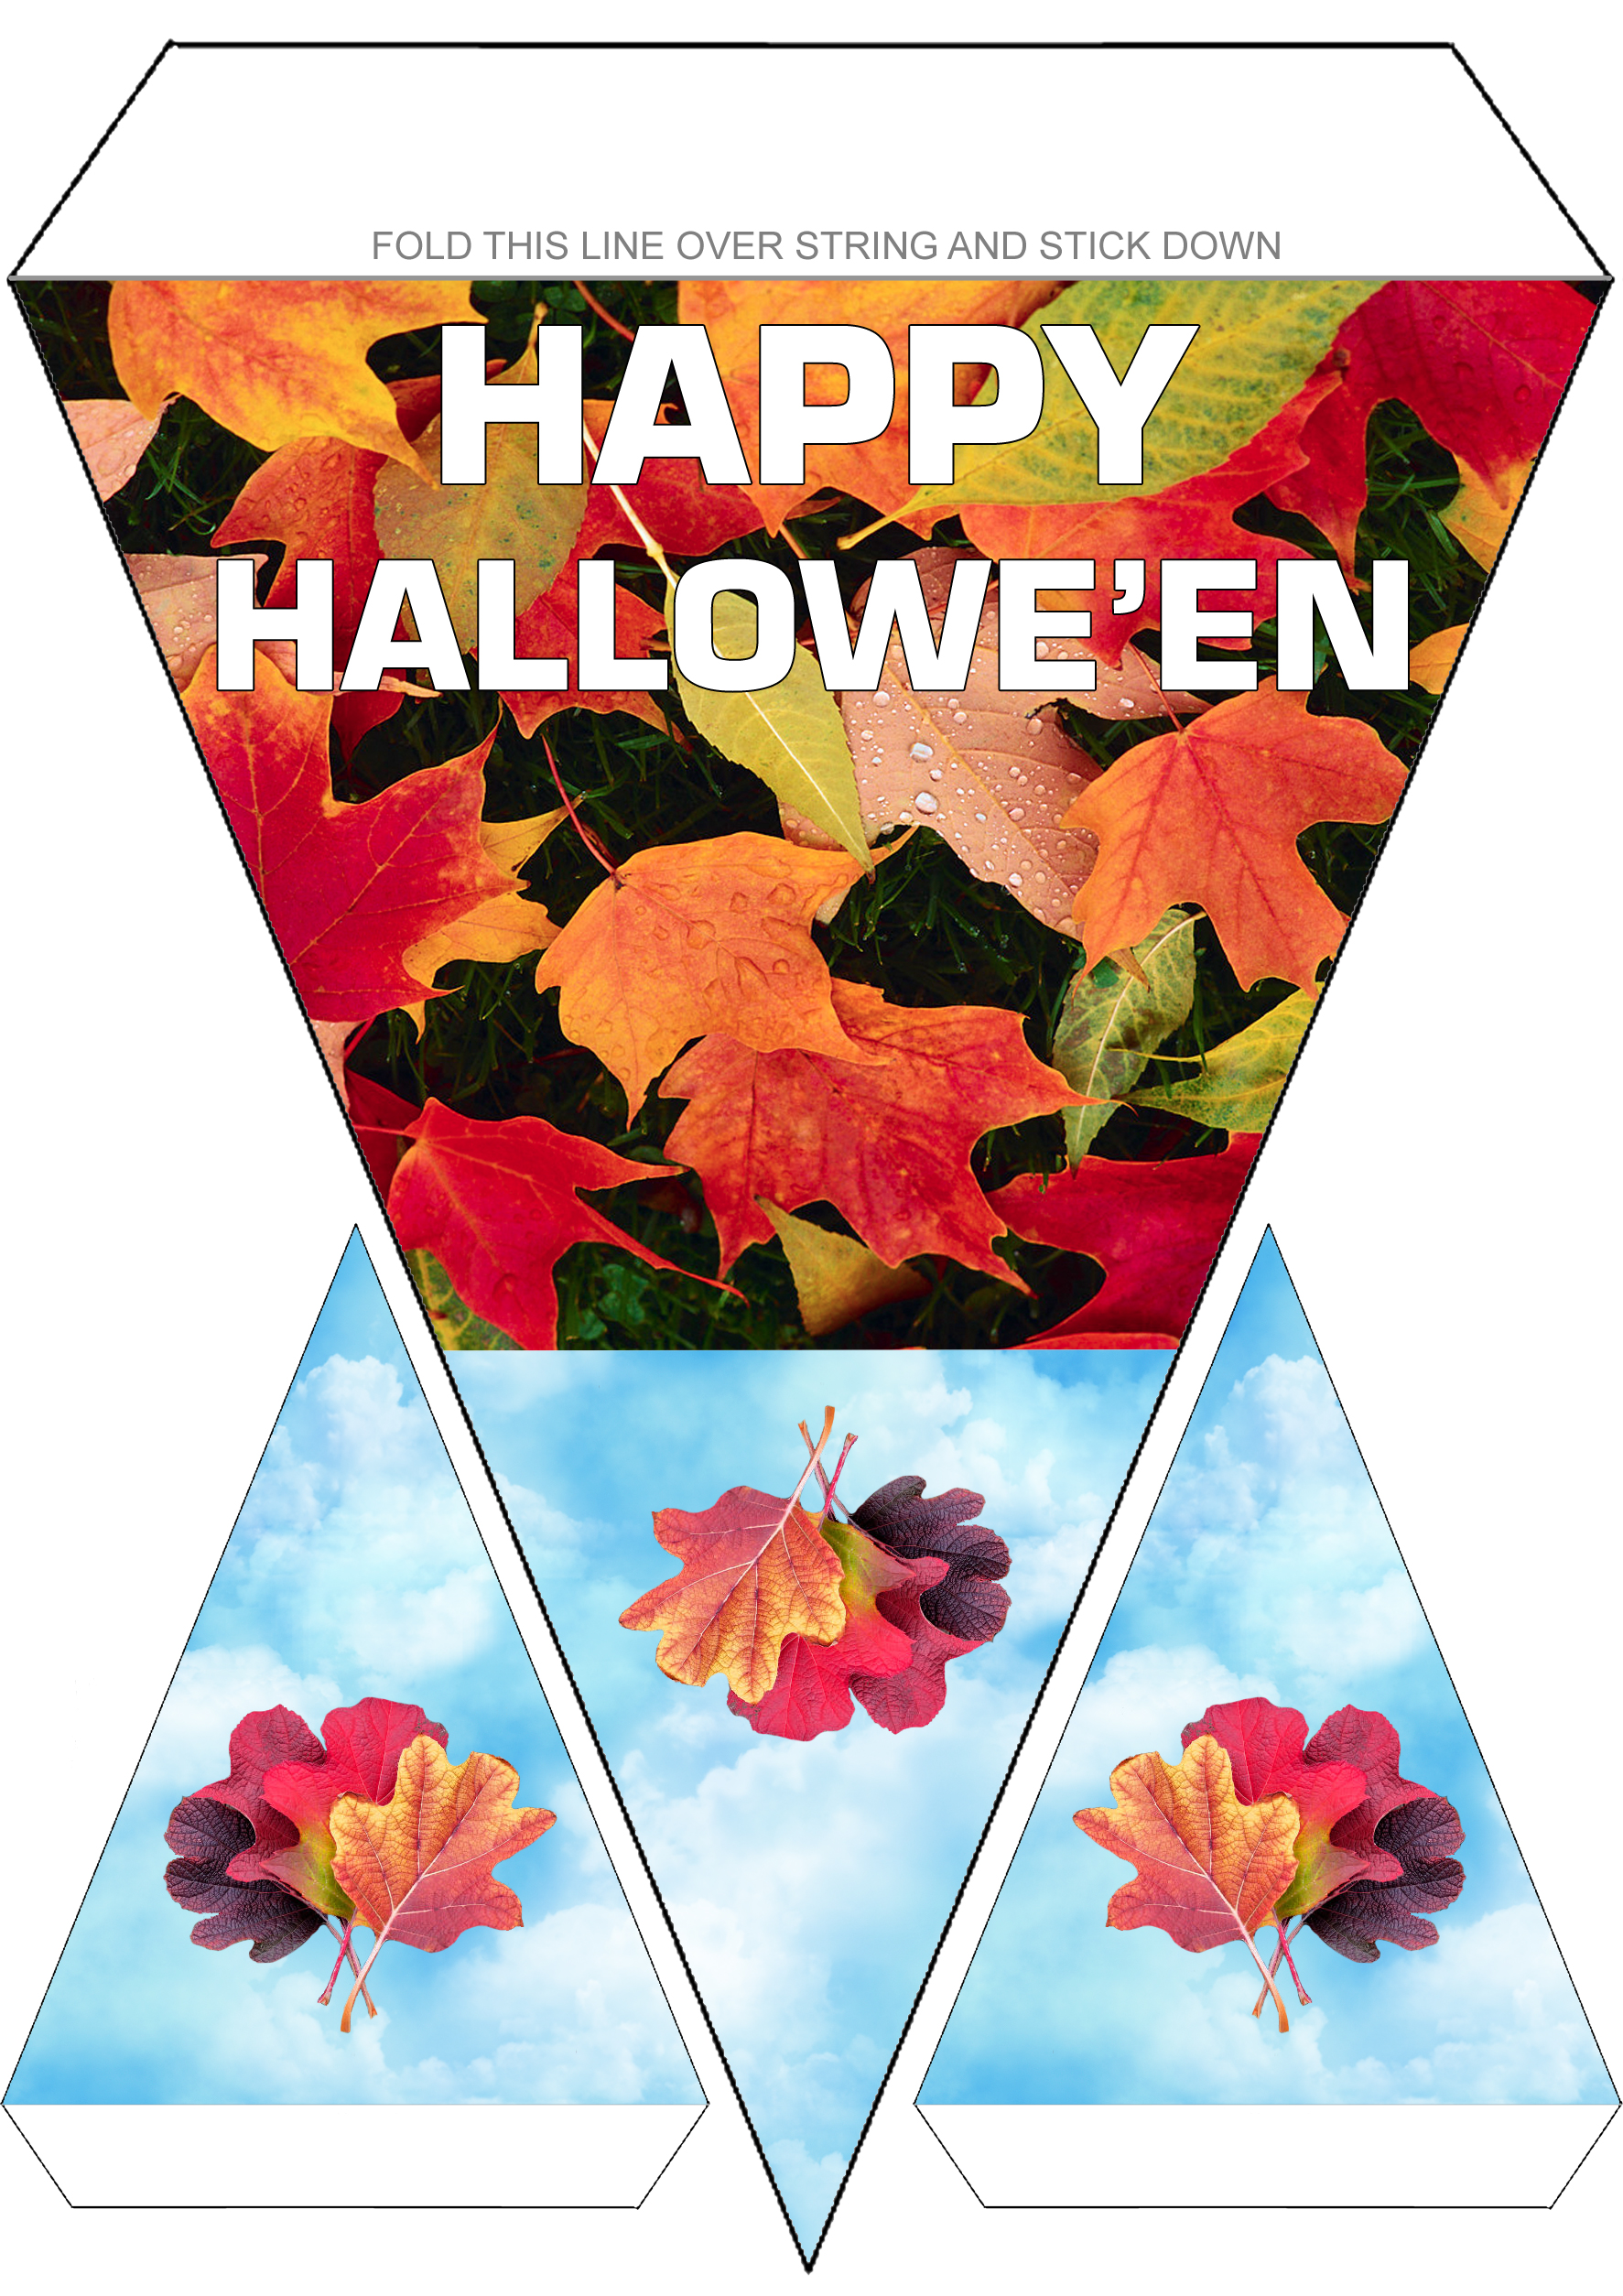 Printable Happy Halloween decoration